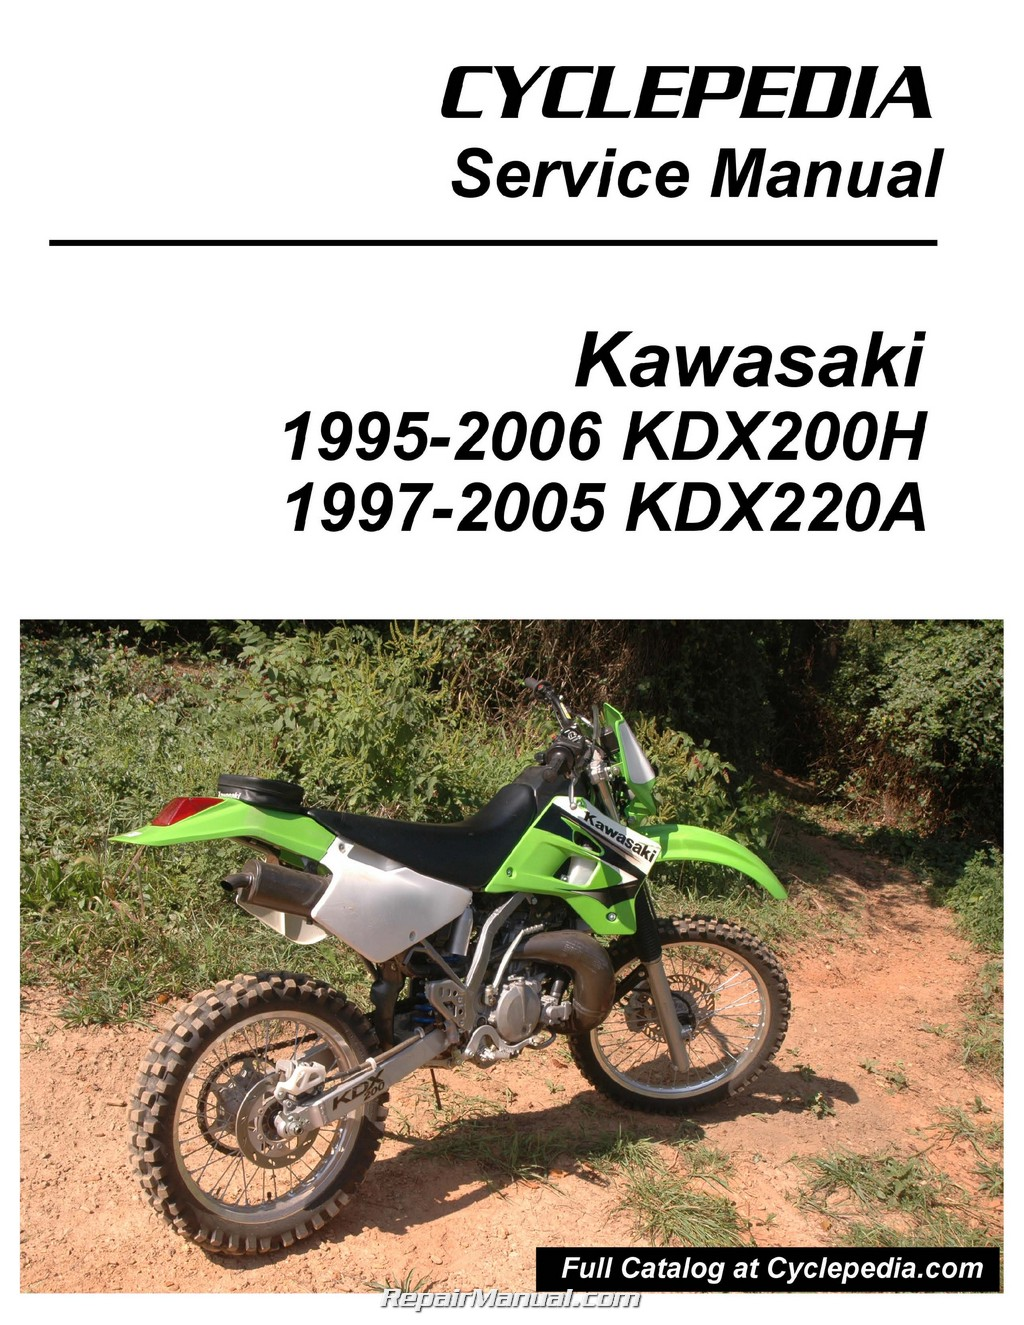 1999 Kawasaki Kdx 175 Wiring Schematics Diagrams Diagram Barako Kdx200h Kdx220a Cyclepedia Printed Motorcycle Service Manual Rh Repairmanual Com 1983 67